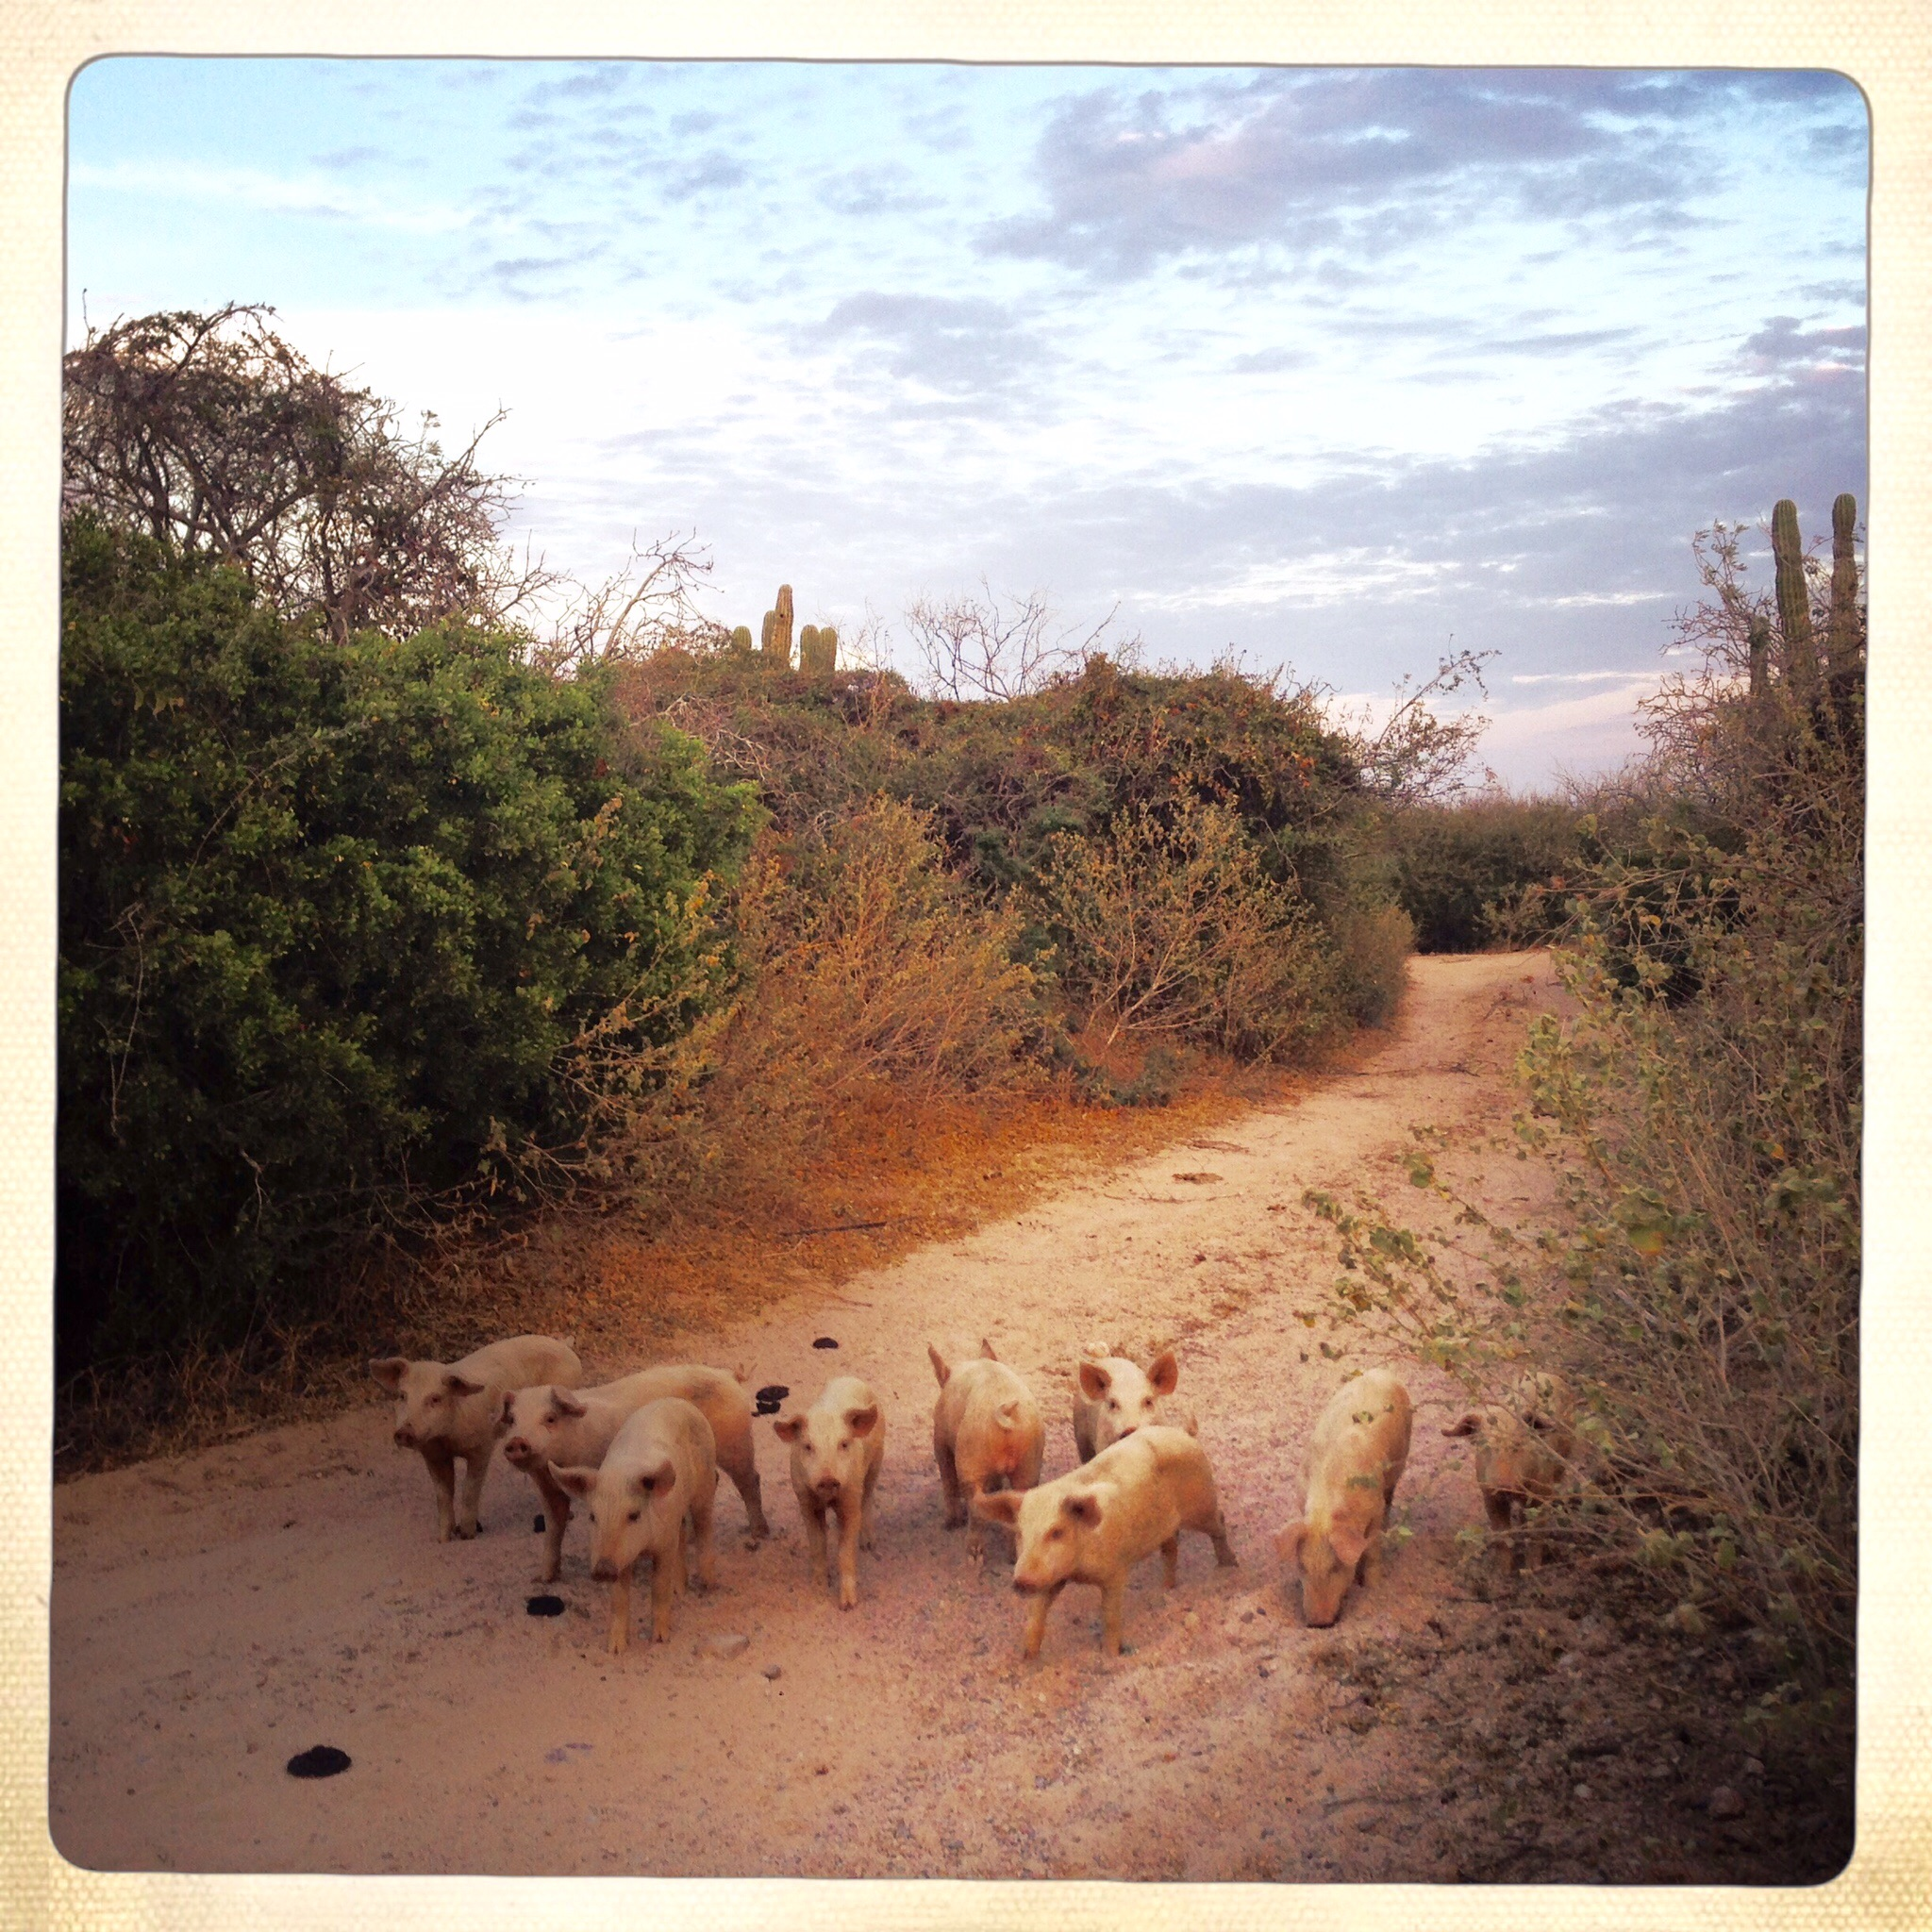 This herd of piglets seemed to chase us at times, snorting their way into our laughter. Photo by Liz Dasilva